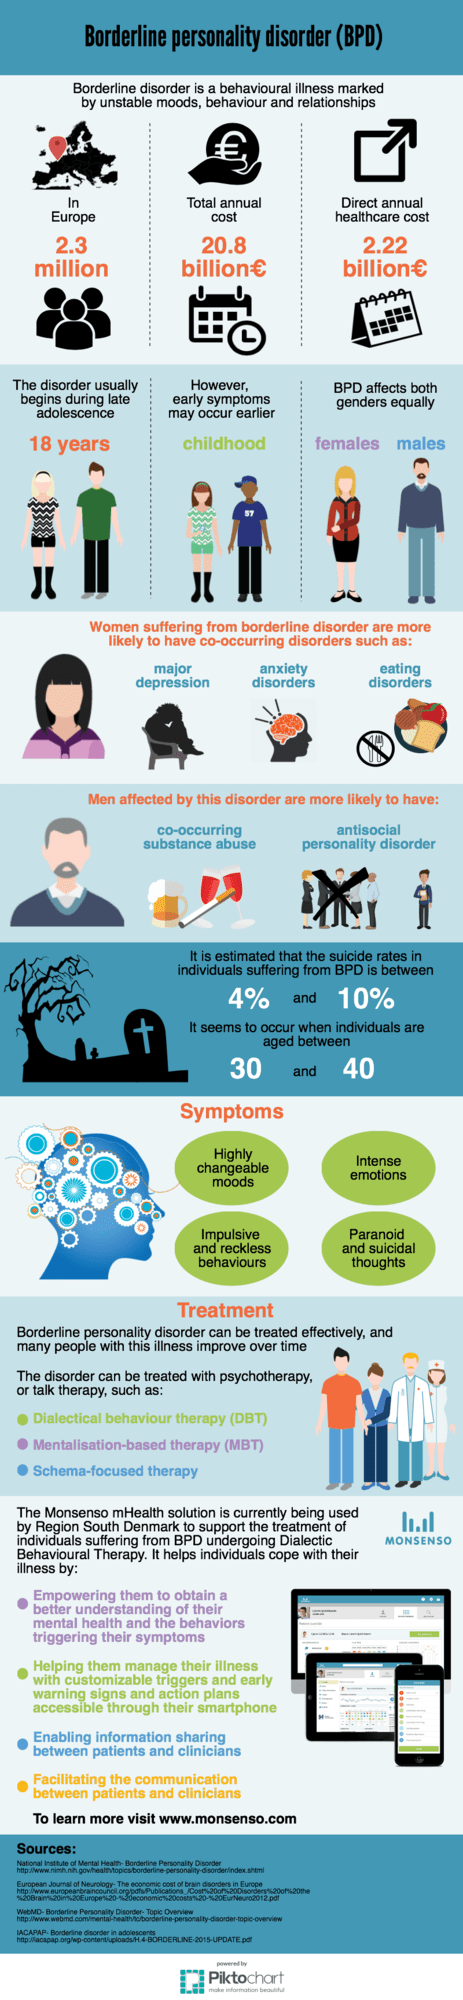 infographic of facts about Borderline disorder